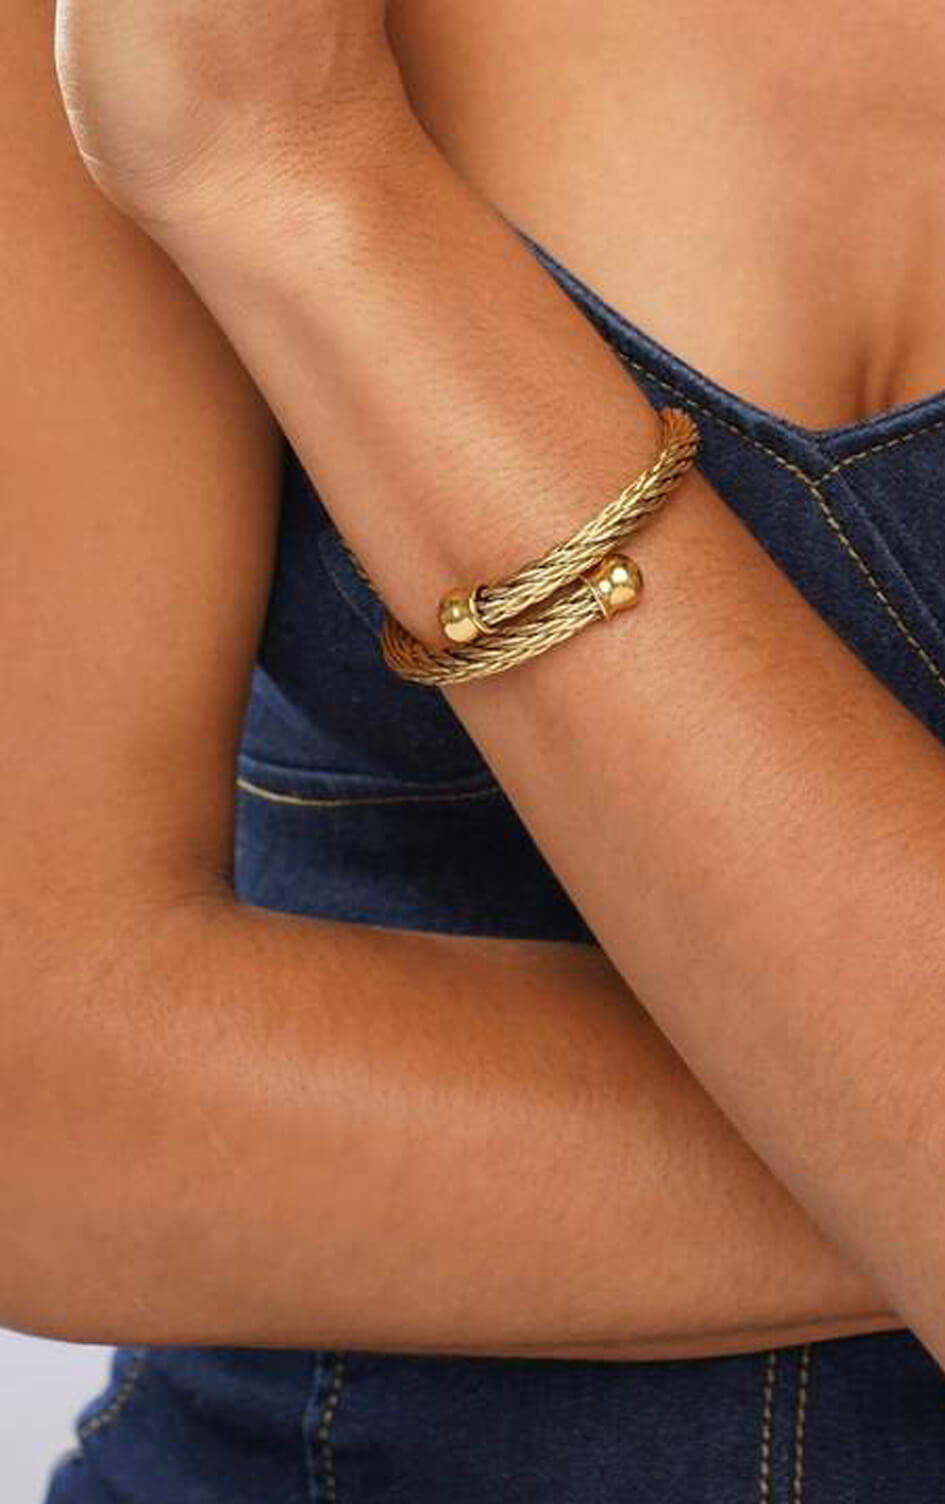 shop-dana-scott-ellie-vail-gold-twisted-anya-wire-bracelet